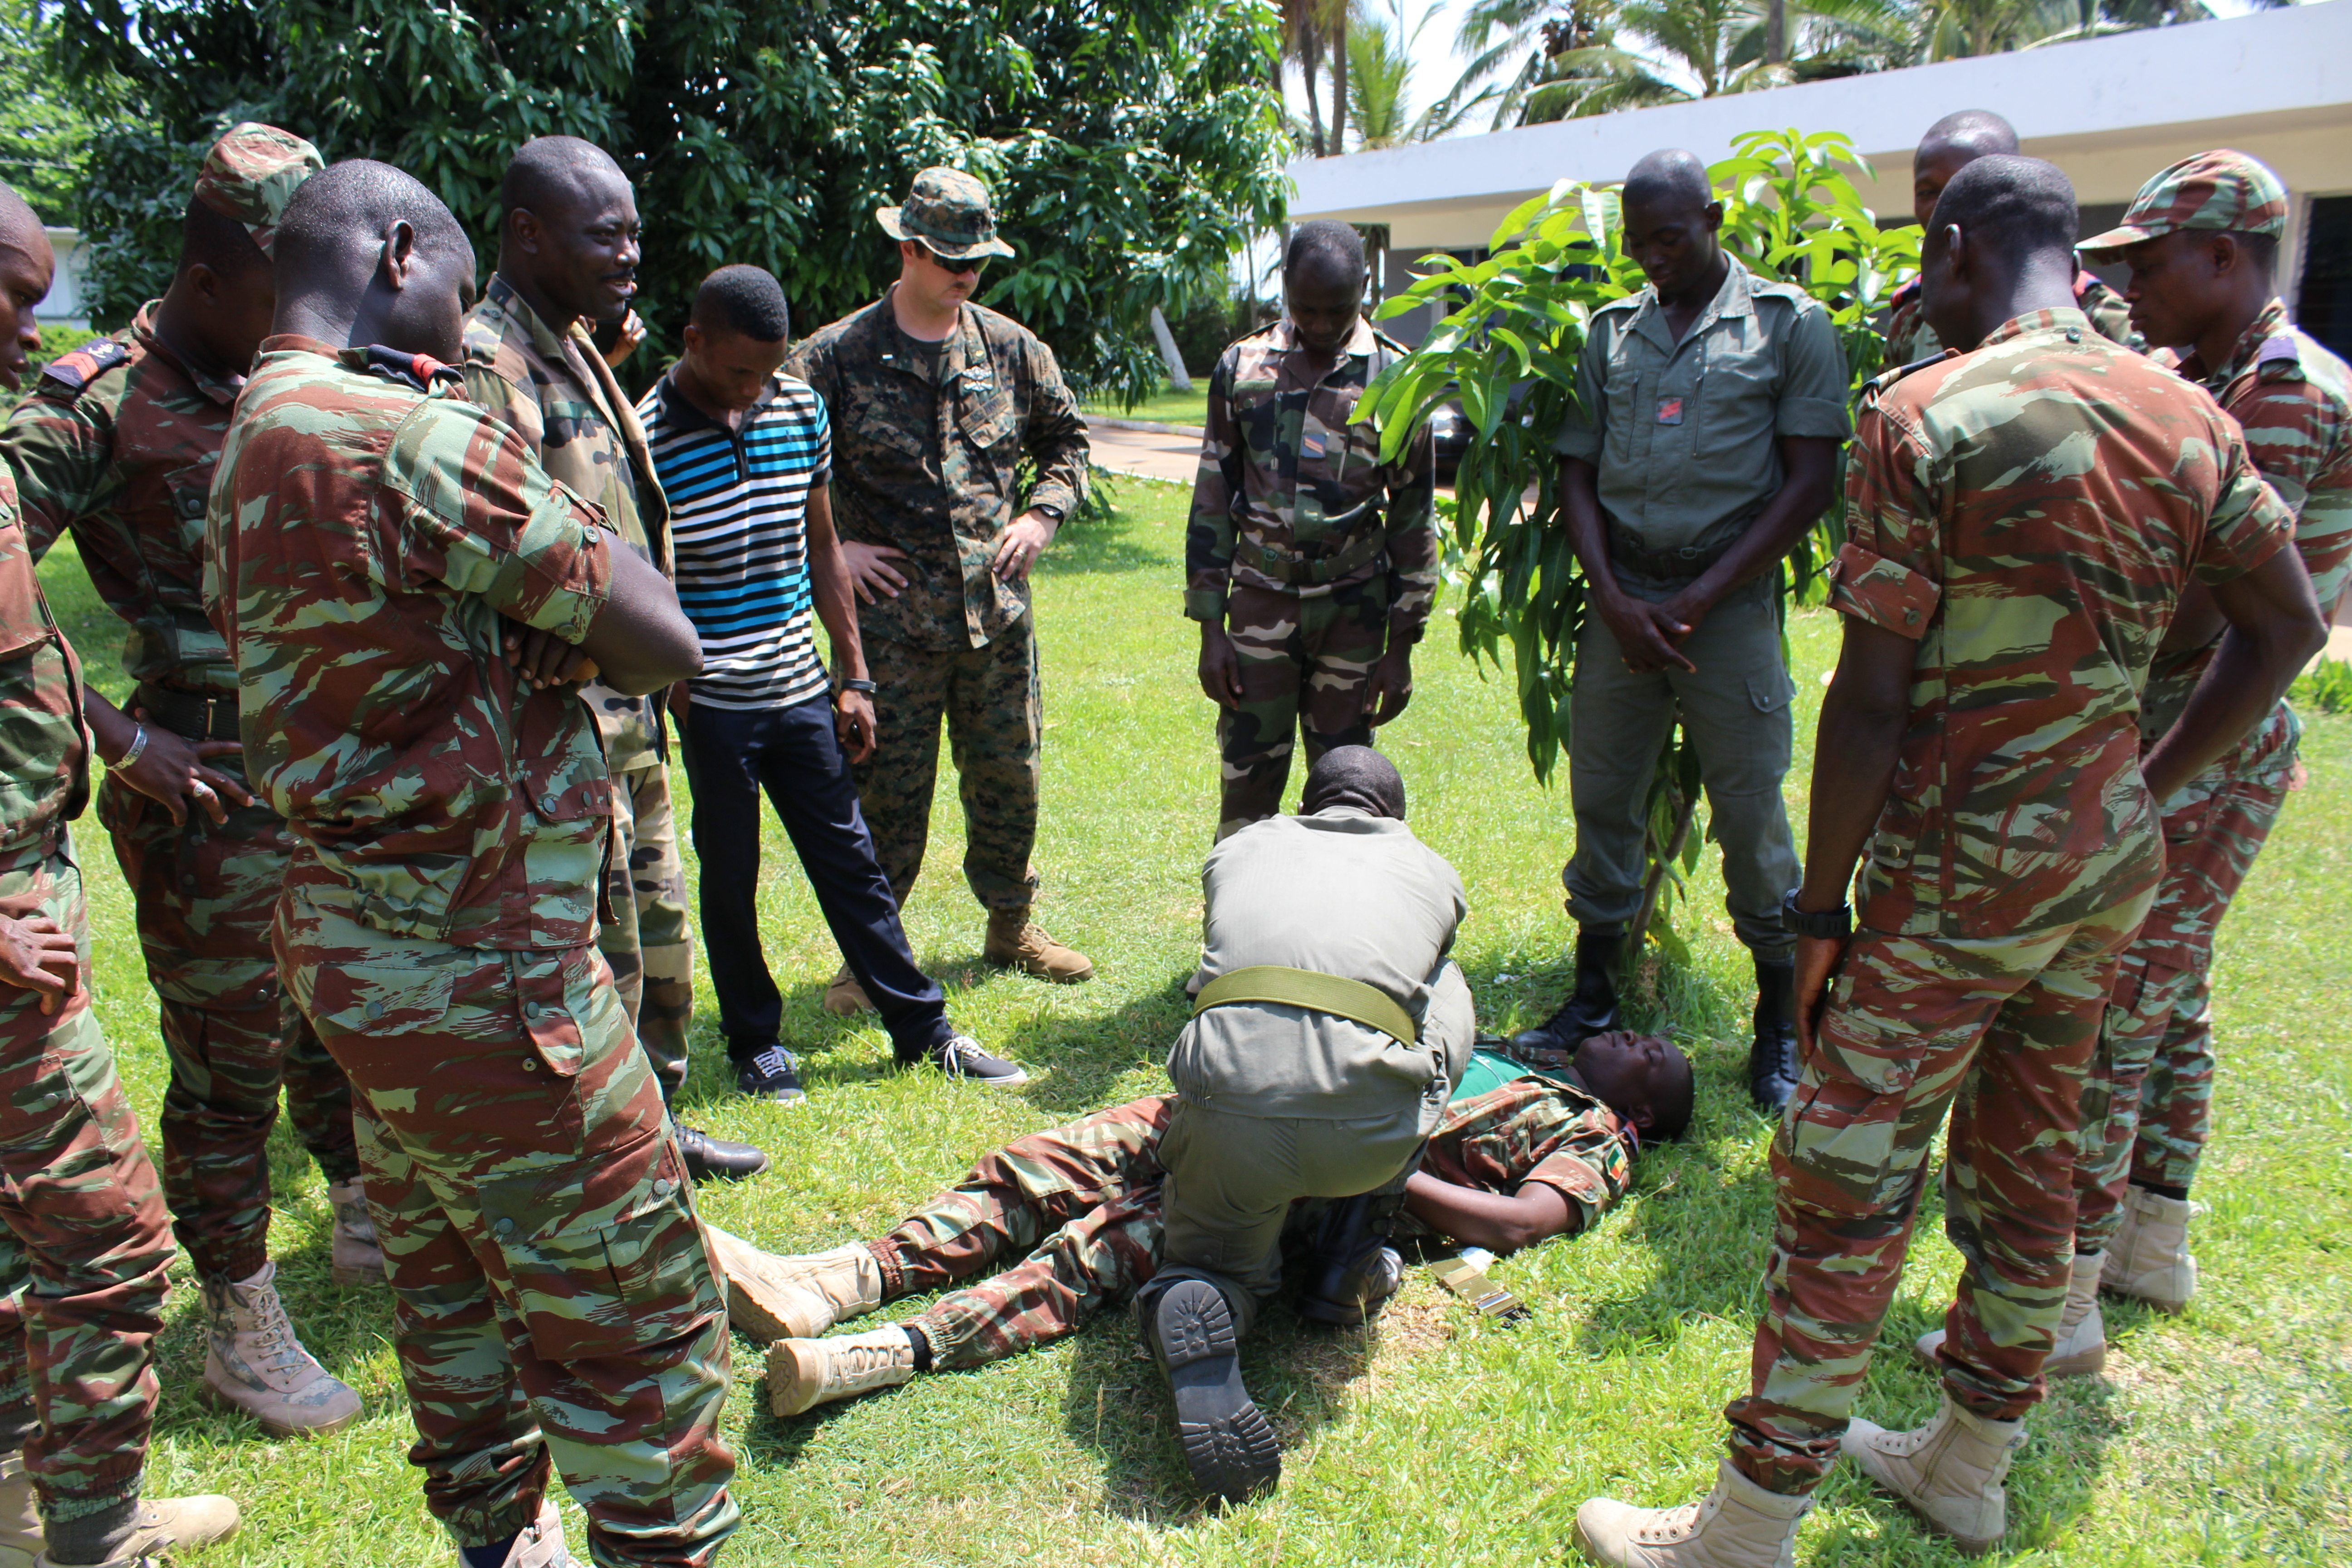 U.S. Marines and sailors teach Togolese and Beninese sailors combat lifesaver medical training, Nov. 3, in Lome, Togo. U.S. Marines and U.K. Royal Marine Commandos trained the Togolese and Beninese sailors as part of the Africa Partnership Station, which is a U.S. Naval Forces Africa initiative that aims to increase the maritime safety and security capacity of African partners through collaboration and regional cooperation through engagement exercises that build toward self-sustained African security of the maritime domain.